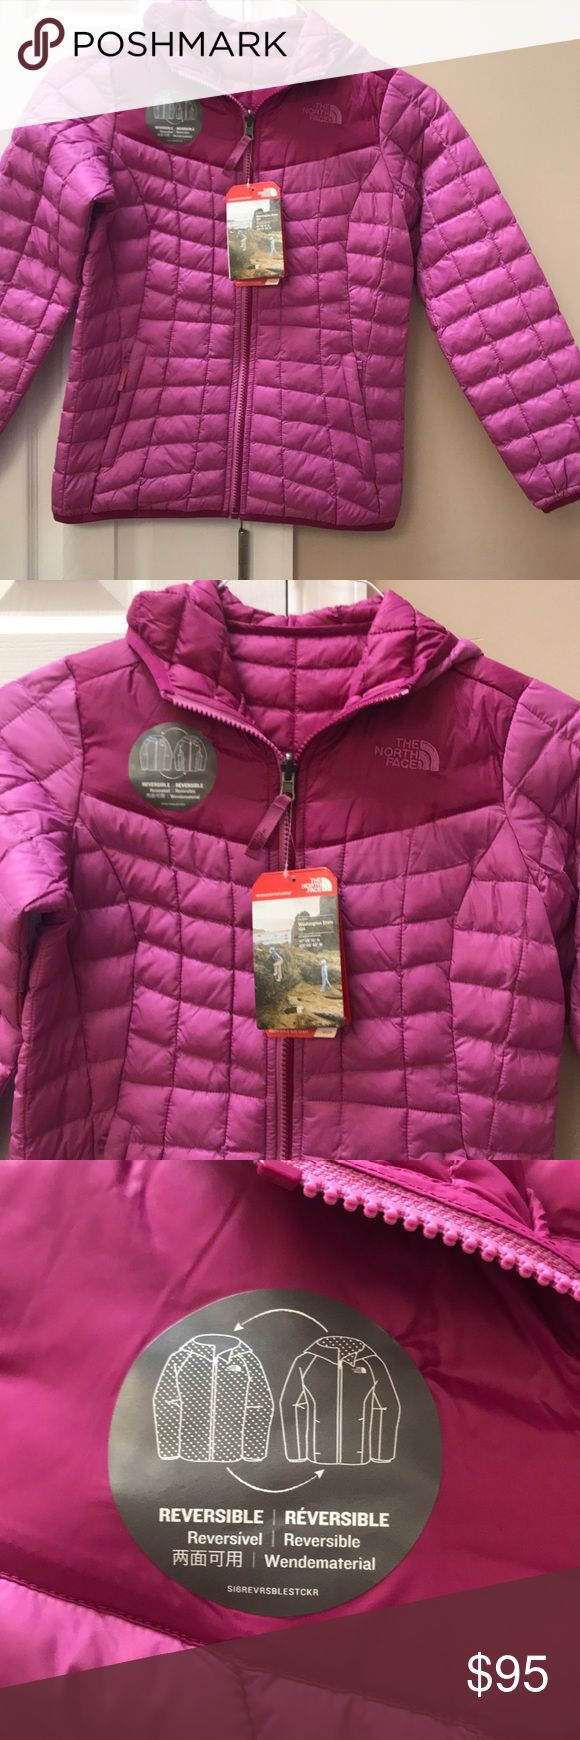 The North Face Girls Thermoball jacket medium Girls reversible Thermoball Northface jacket in Wisteria. A very pretty purplish/pink color.  Never worn. My daughter outgrew it before she could even wear it.  Lightweight yet good for cold weather. The North Face Jackets & Coats Puffers